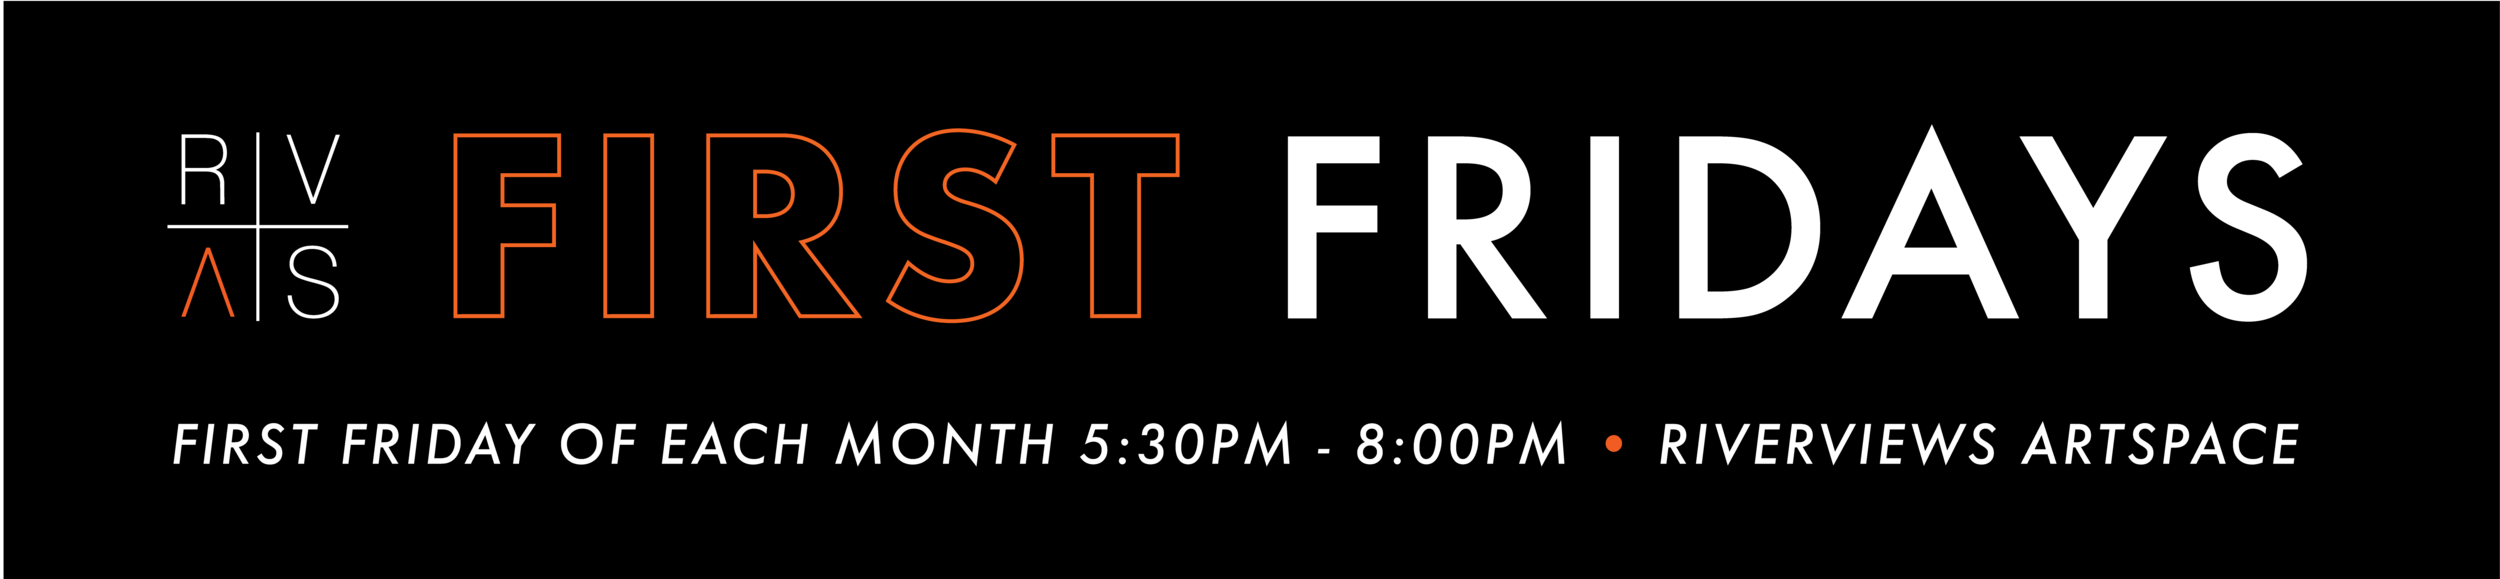 RVAS_FirstFridays_FB Text Banner-01.png